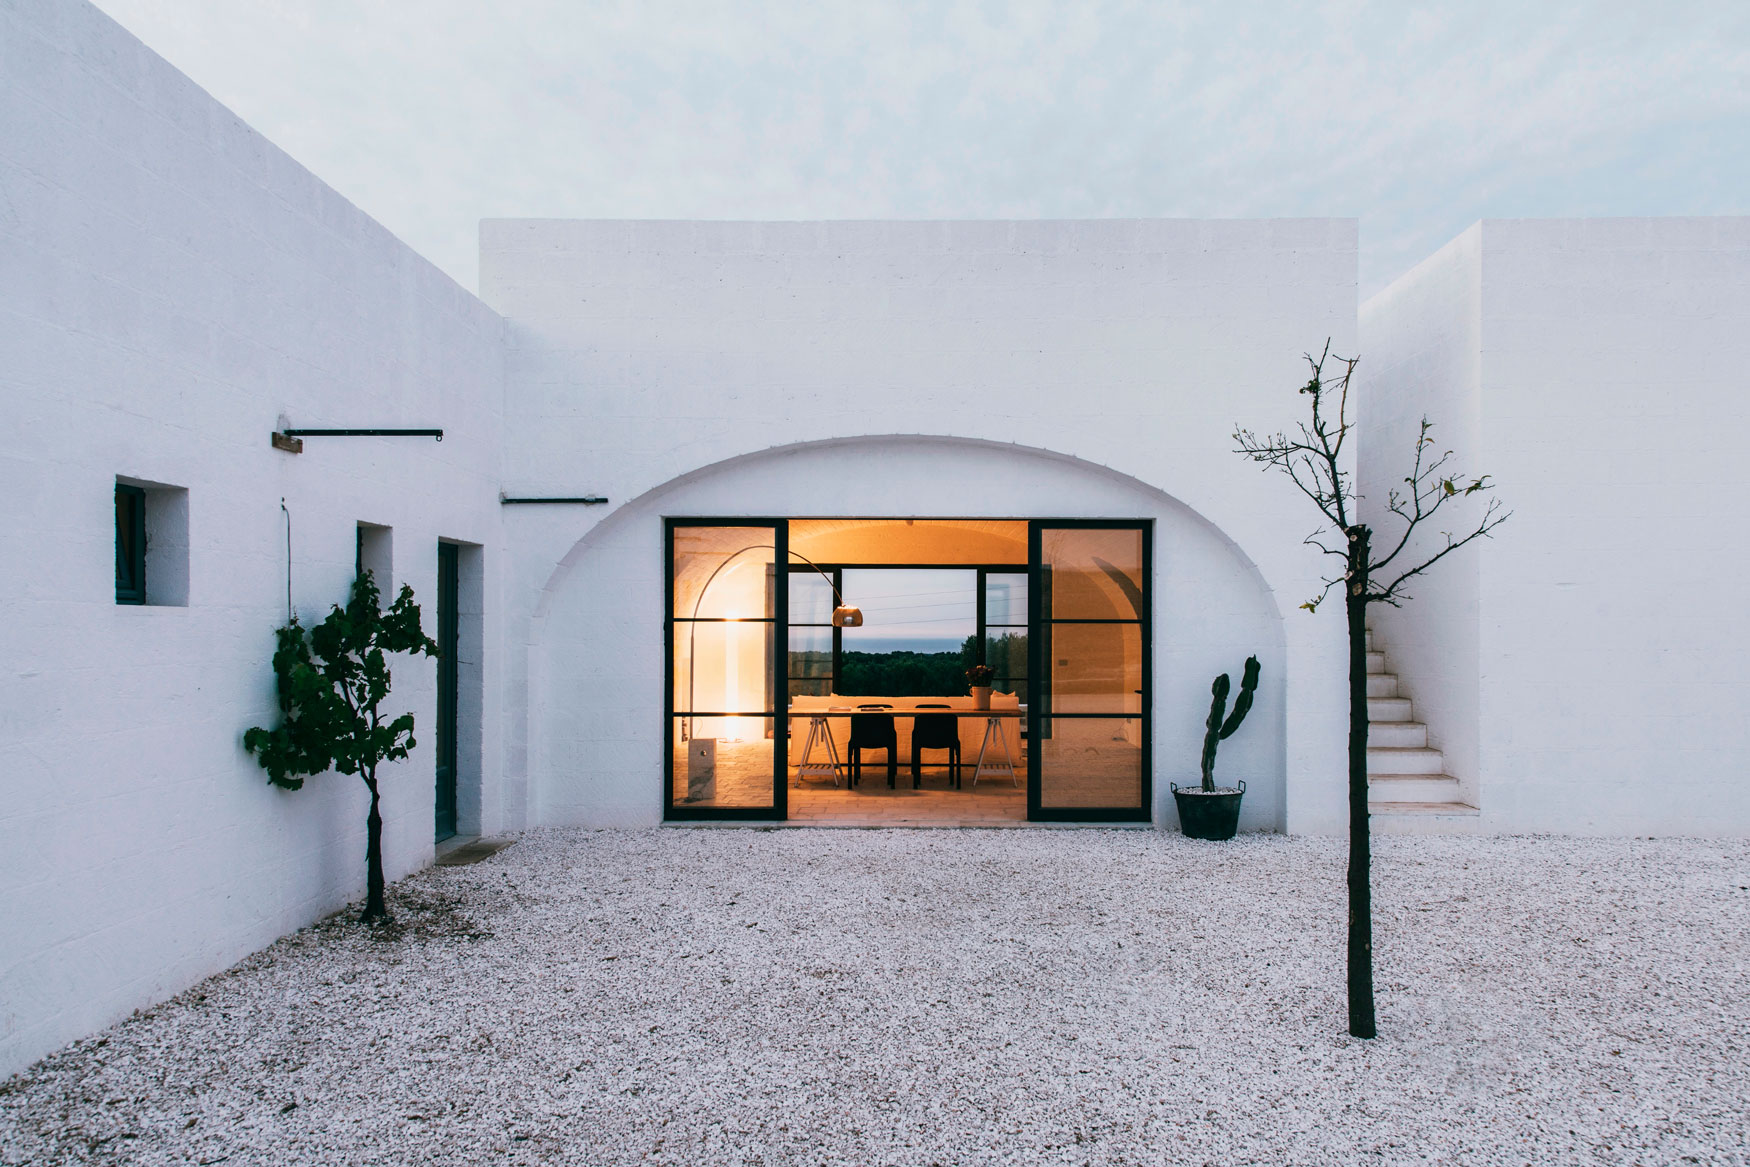 Andrew Trotter Studio Designs a Modern Day Farmhouse in Ostuni, Italy